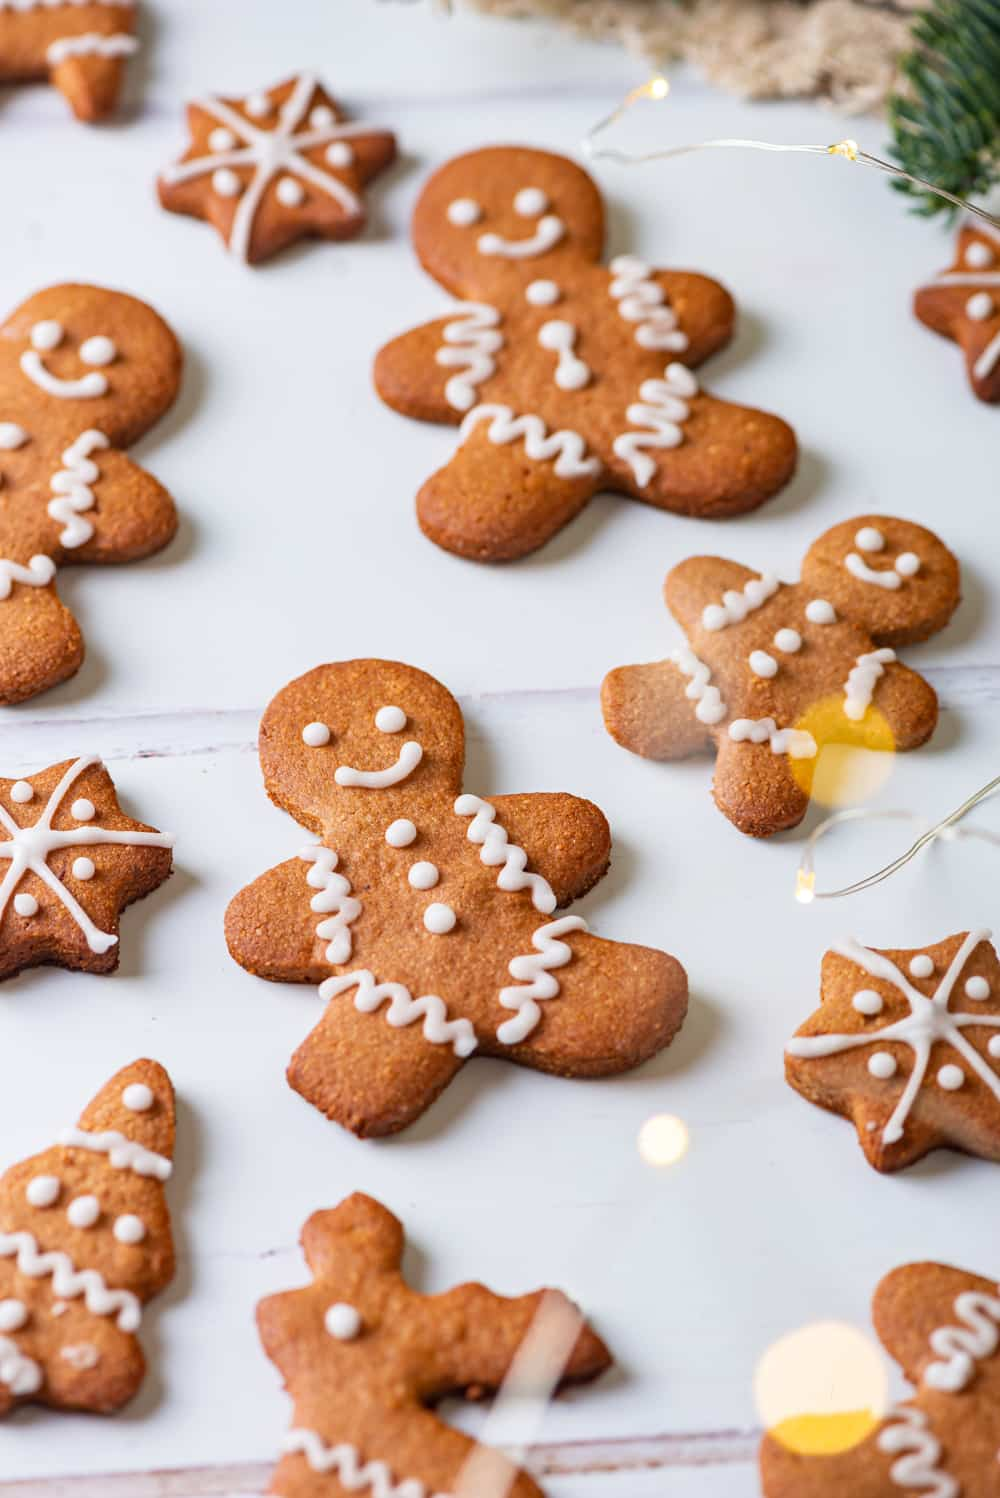 Gingerbread cookies on a white table with gold lights to the right of them.